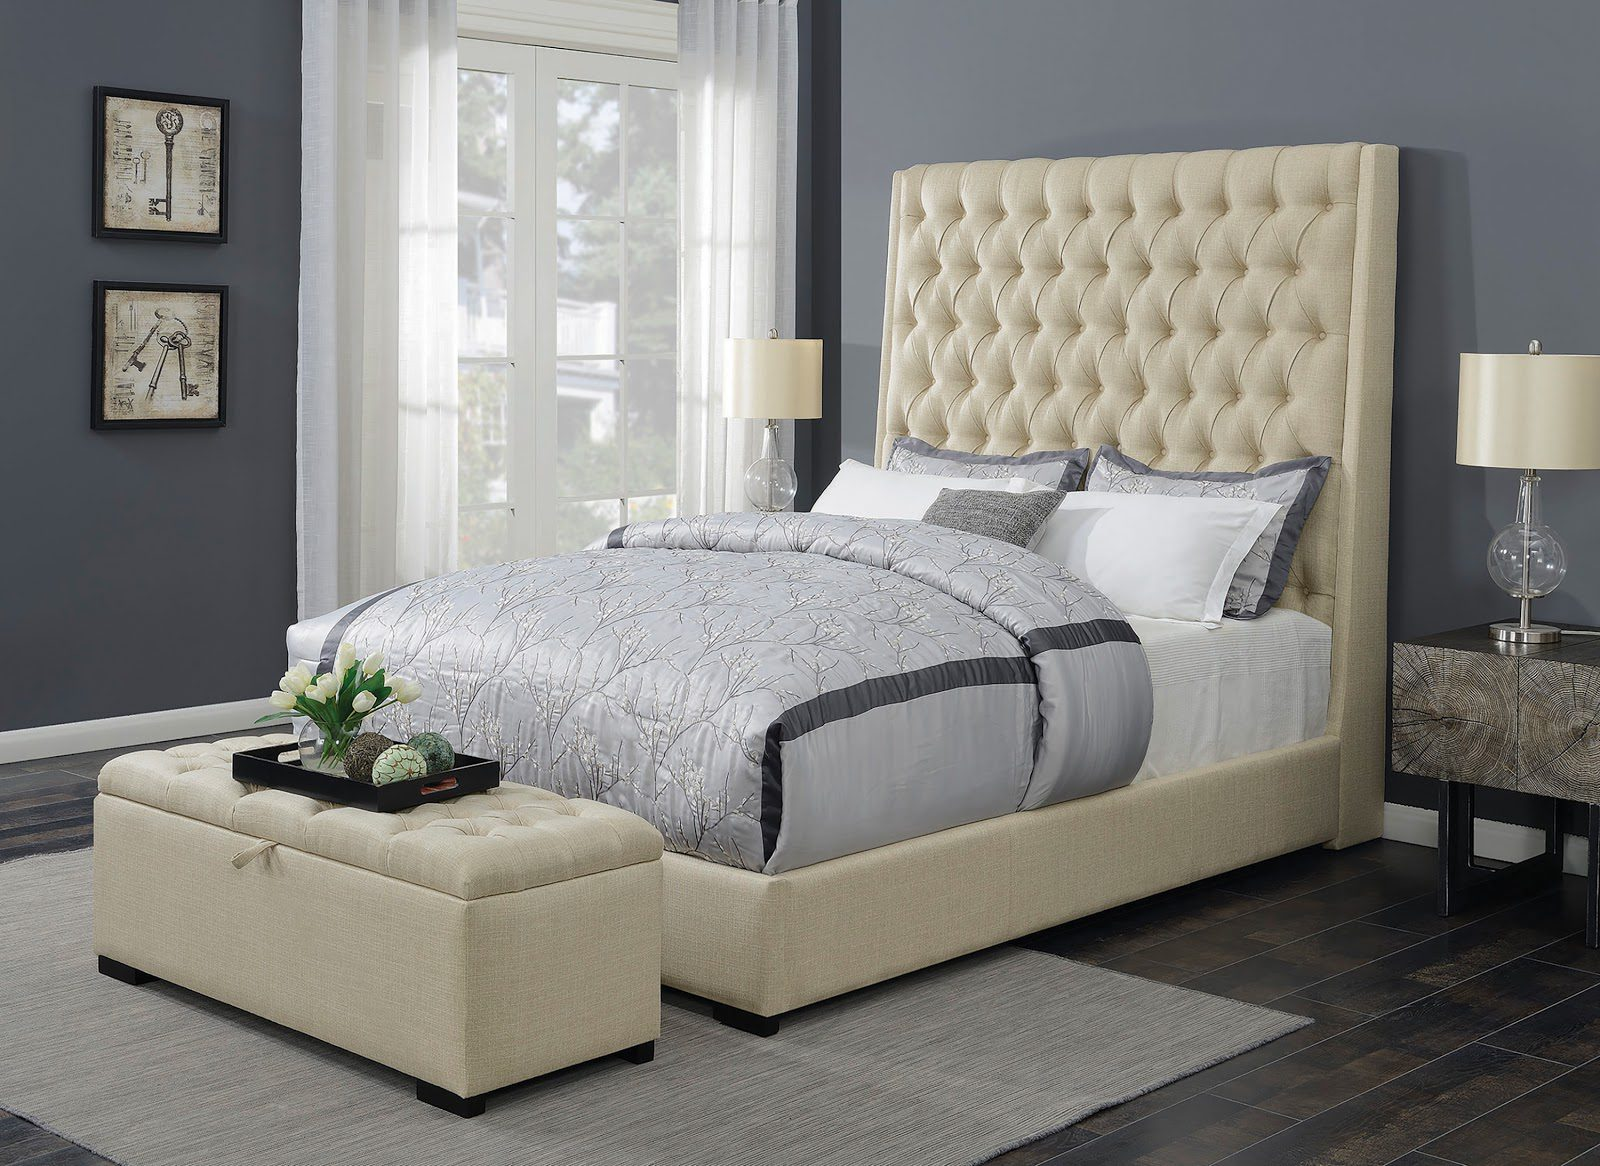 Camille queen button tufted bed cream